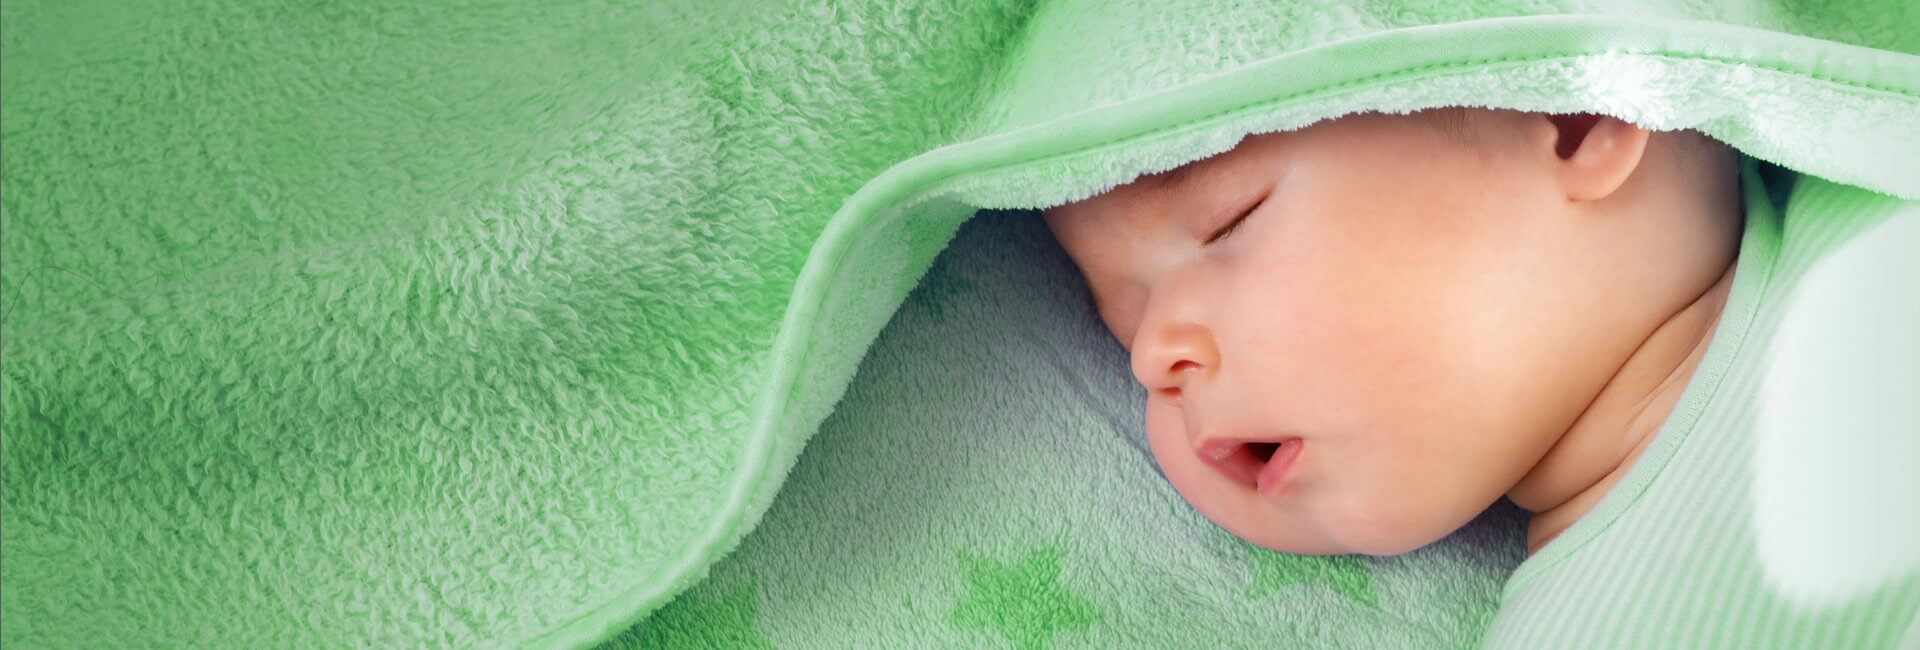 Baby sleeping peacefully wrapped in blanket.